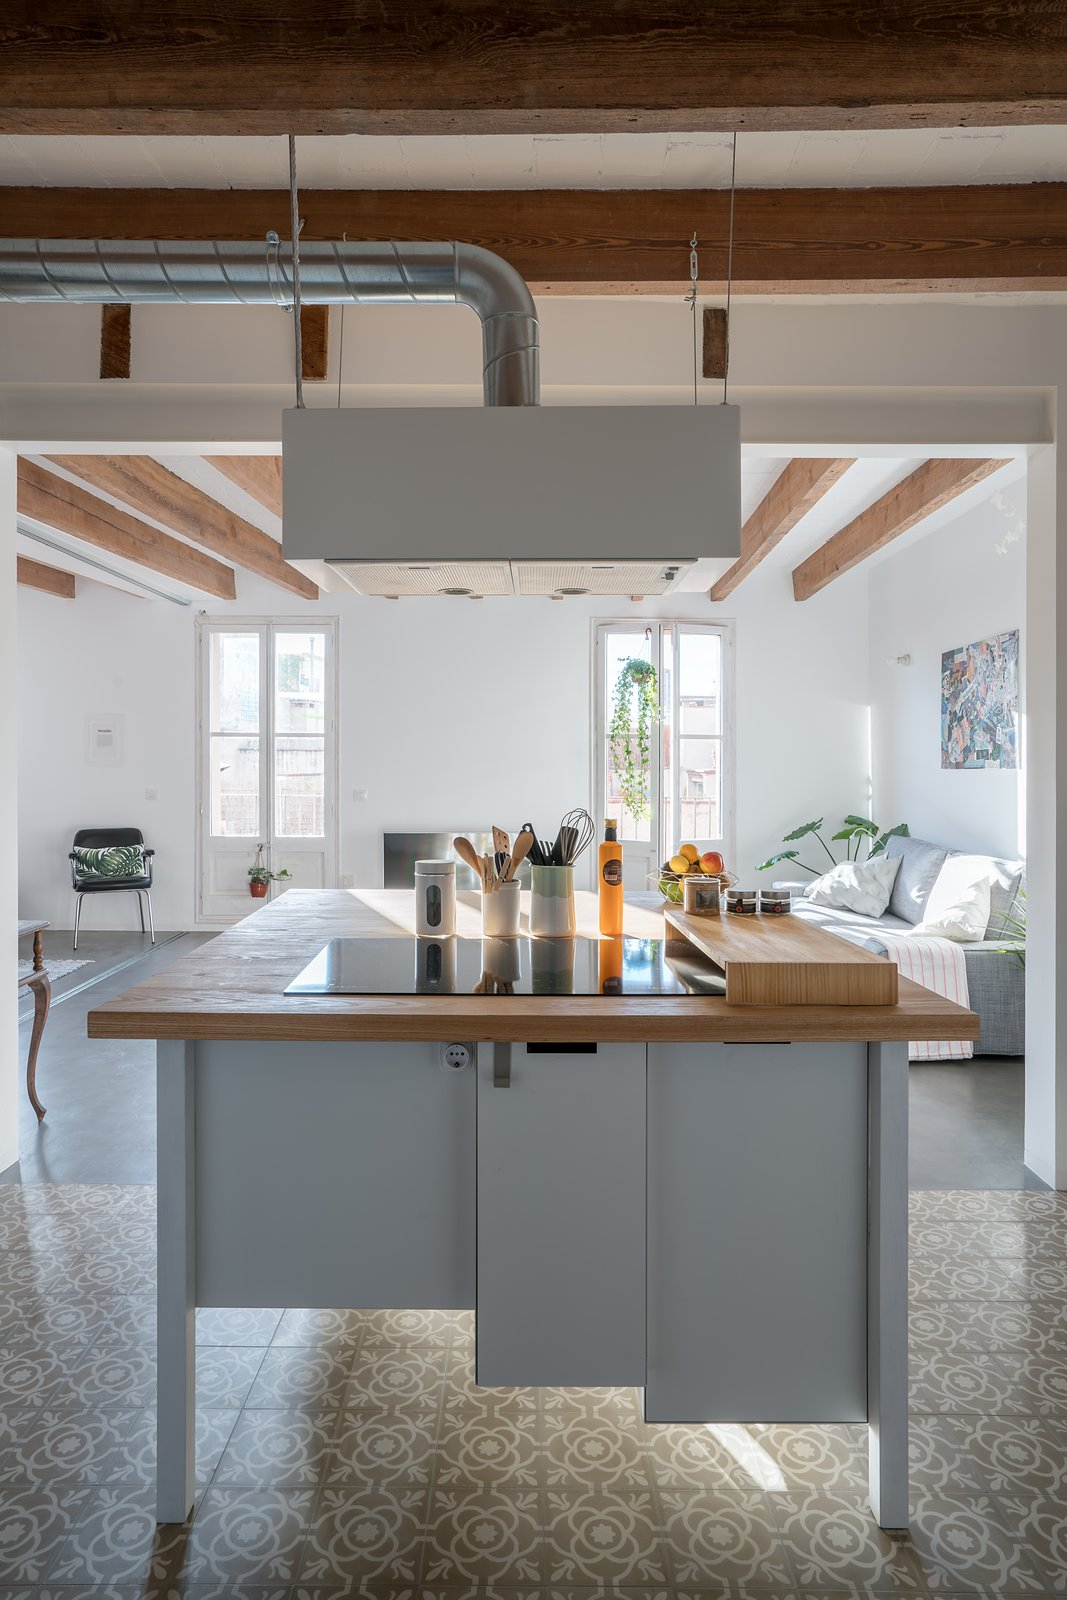 Kitchen Table Tagged: Kitchen, Ceramic Tile Floor, Wood Counter, and White Cabinet.  Old Town Refurbishment by Habitan Architects